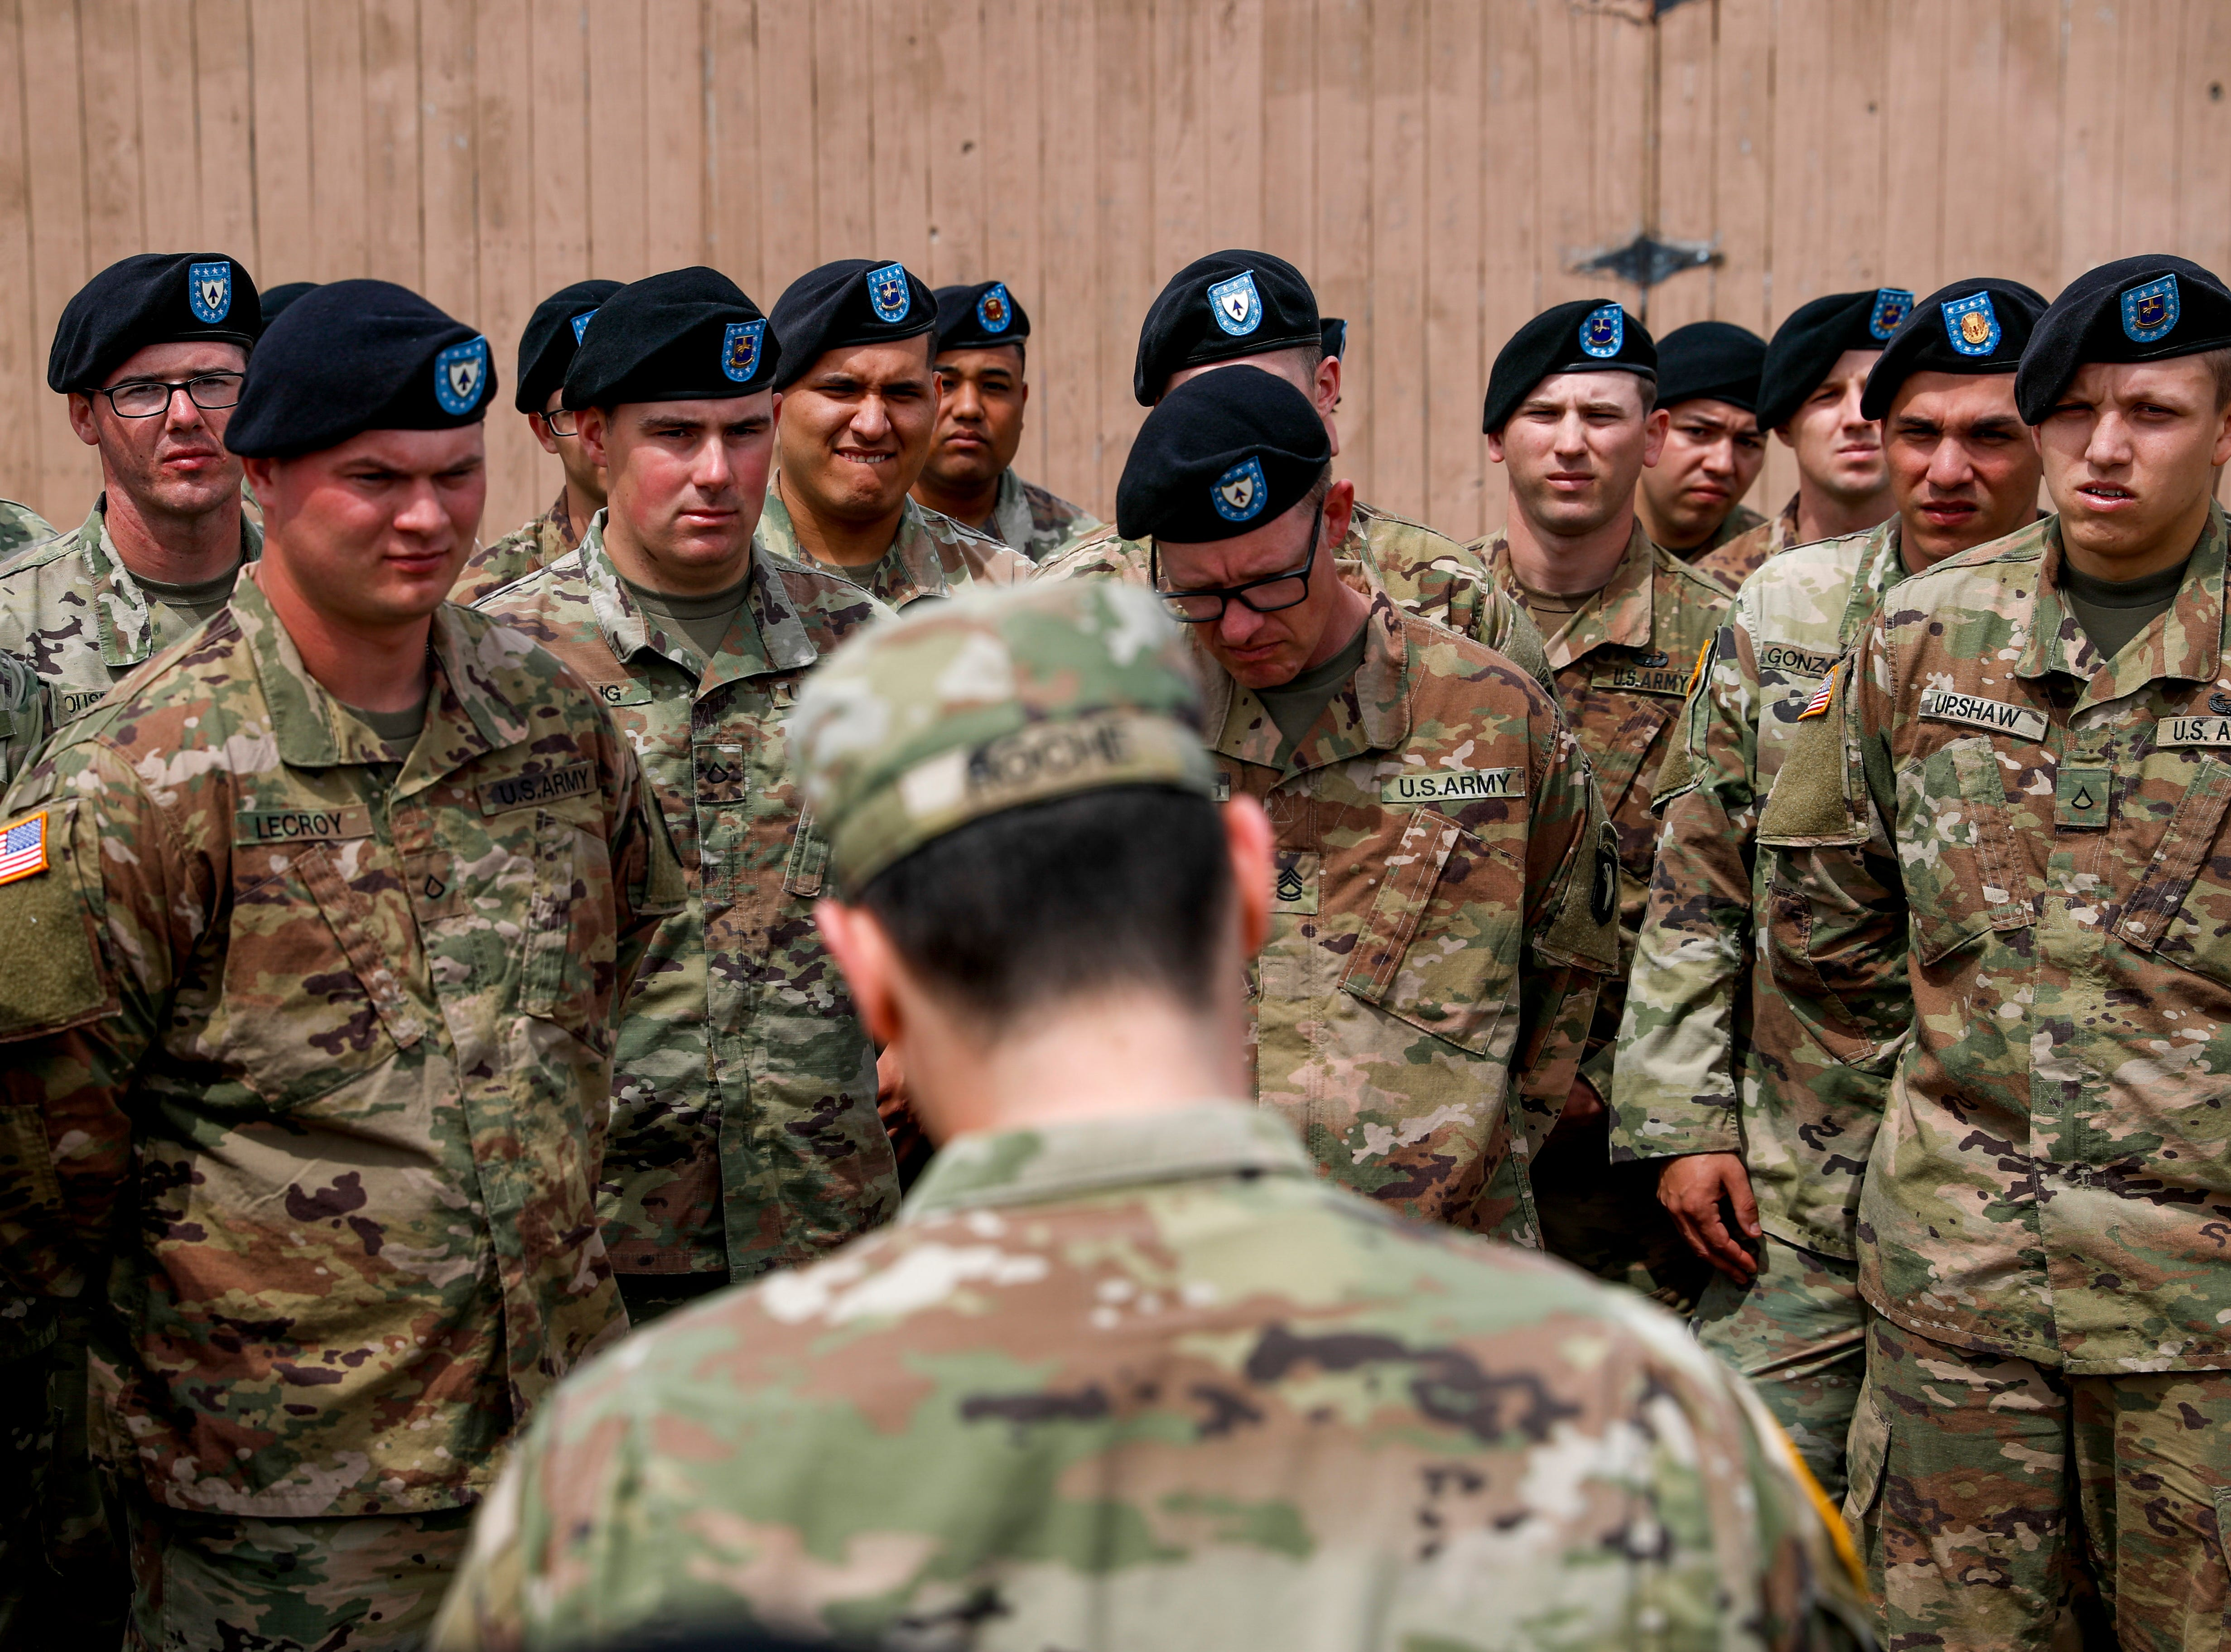 Soldiers listen for their name to be called so they may be dismissed after a colors casing ceremony prior to deployment for Ukraine at 2 BCT Headquarters in Fort Campbell, KY., on Friday, April 12, 2019.